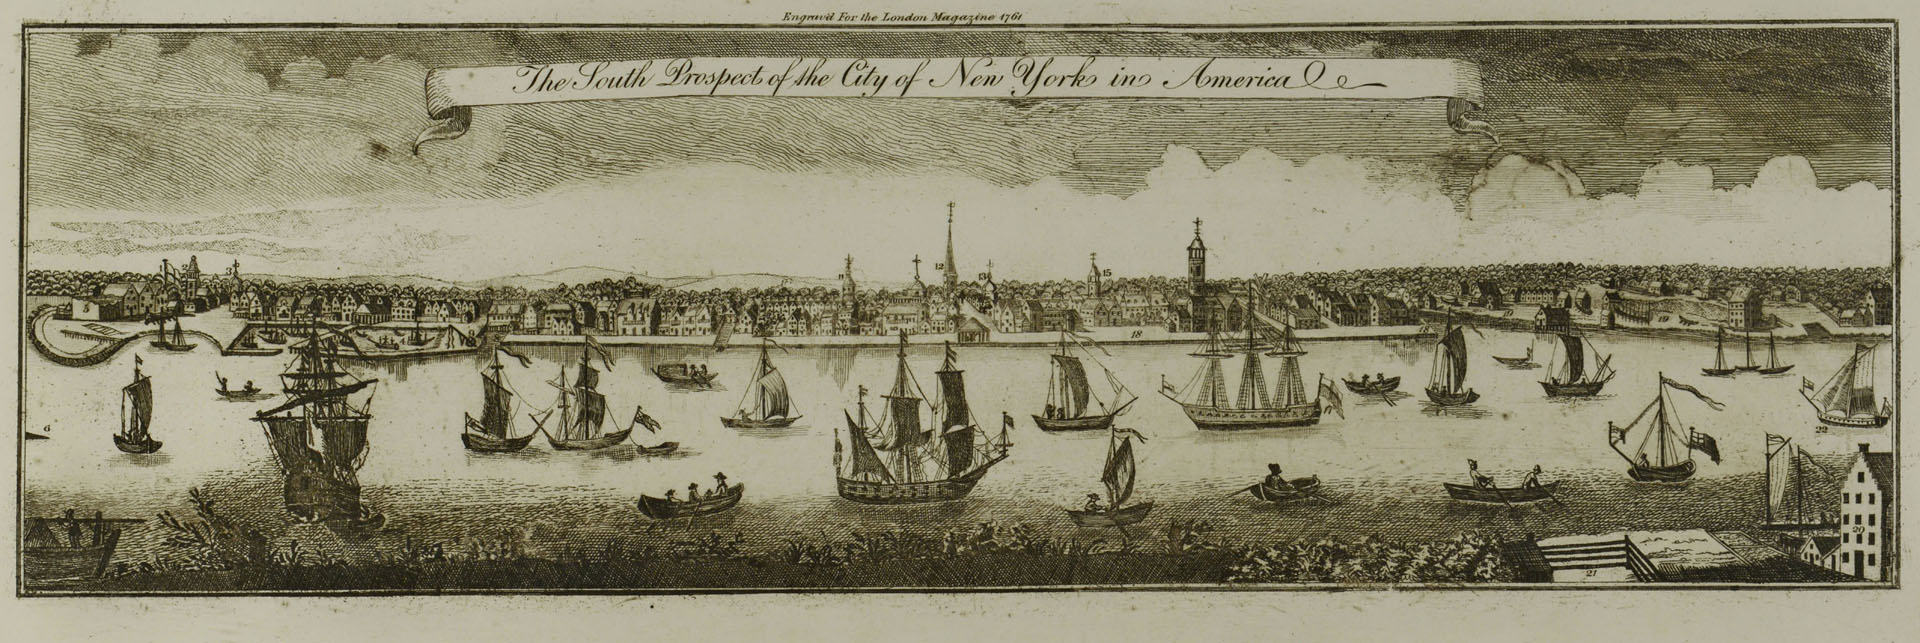 Lot 704: Engraving of the City of New York, after 1761